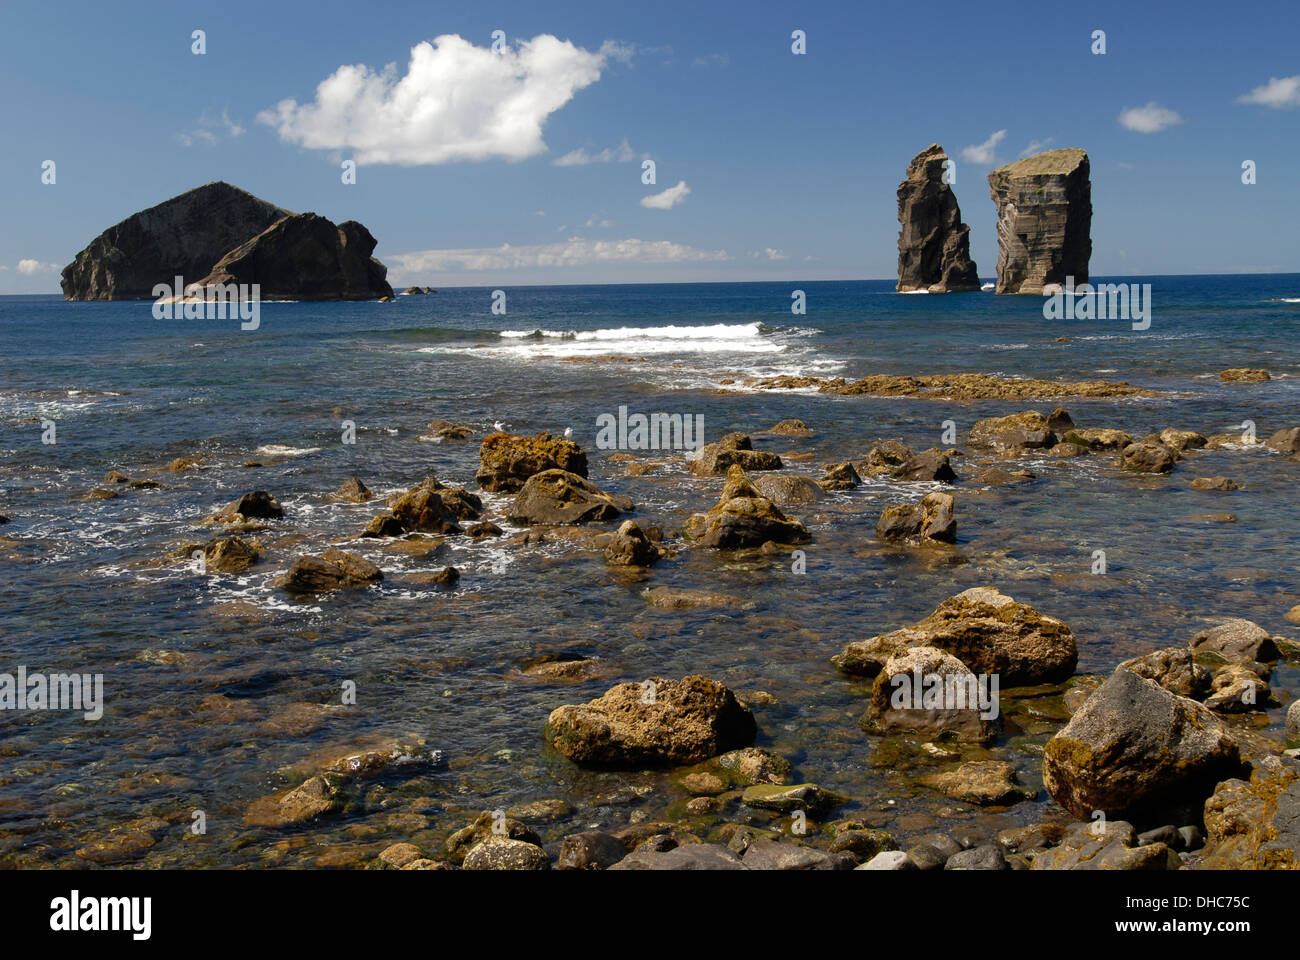 Rocks at the coastline in Mosteiros and Ilheu dos Mosteiros, Sao Miguel Island, Azores, Portugal - Stock Image